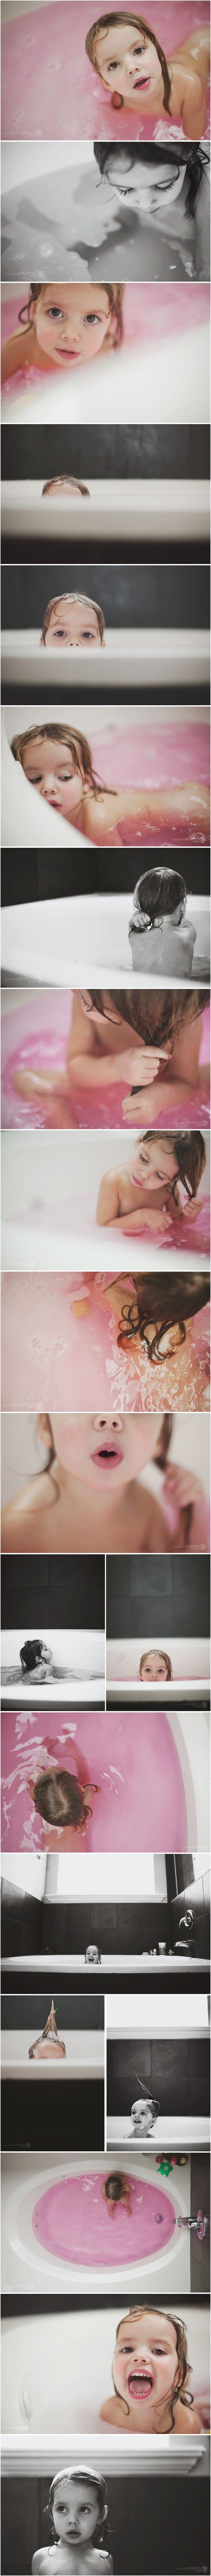 summer murdock | angles and perspective, so cute! Doing this in guest bath when Chloe is bigger